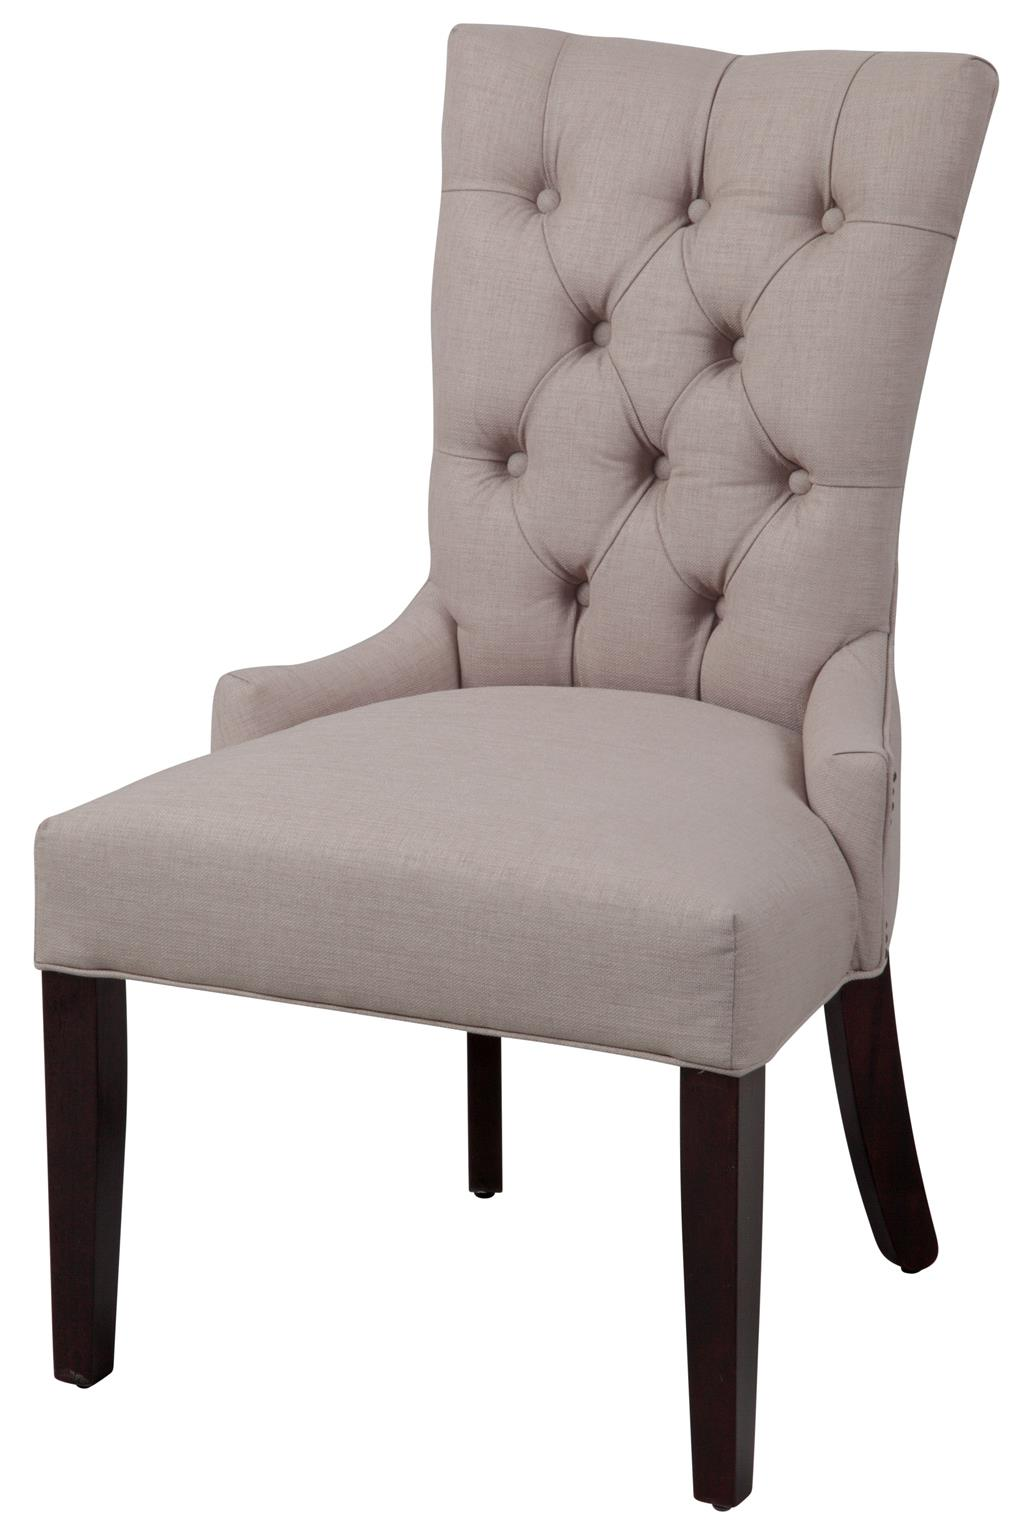 CMI Parson Chairs Customizable Parson's Chair - Item Number: 860CSN